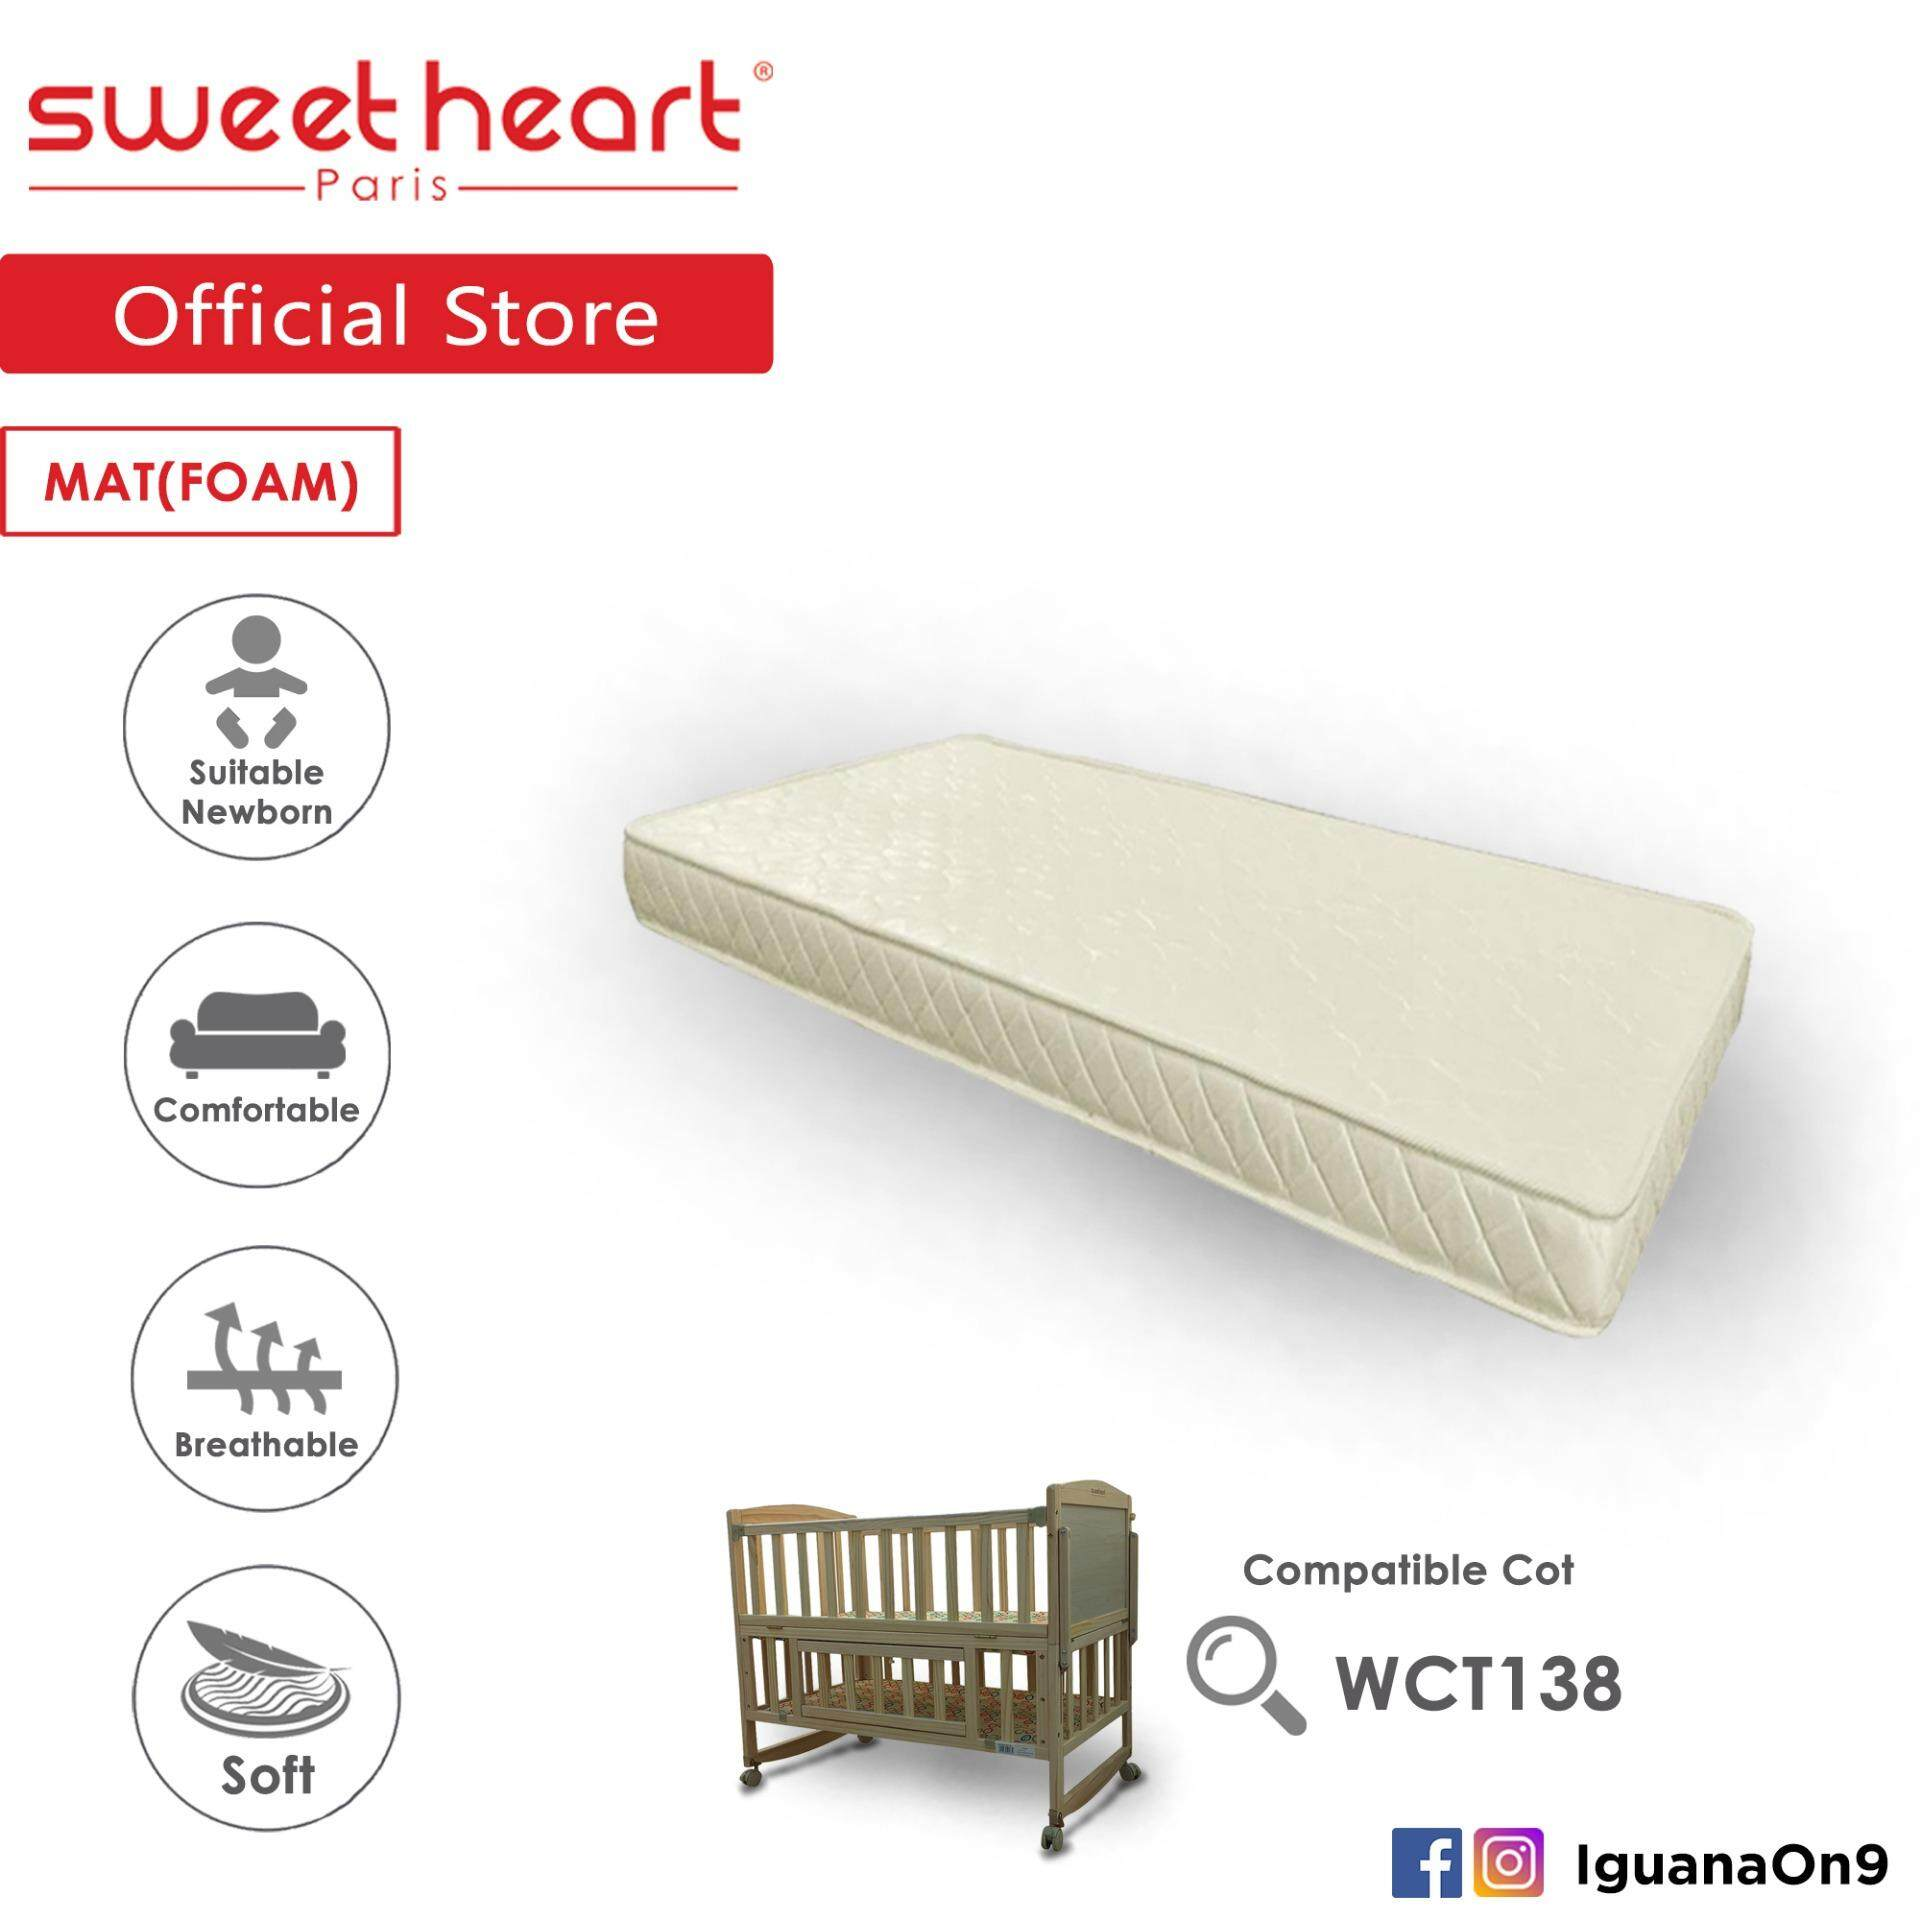 Sweet Heart Paris 5? Thickness Foam Mattress For SHP Wooden Cot WCT138